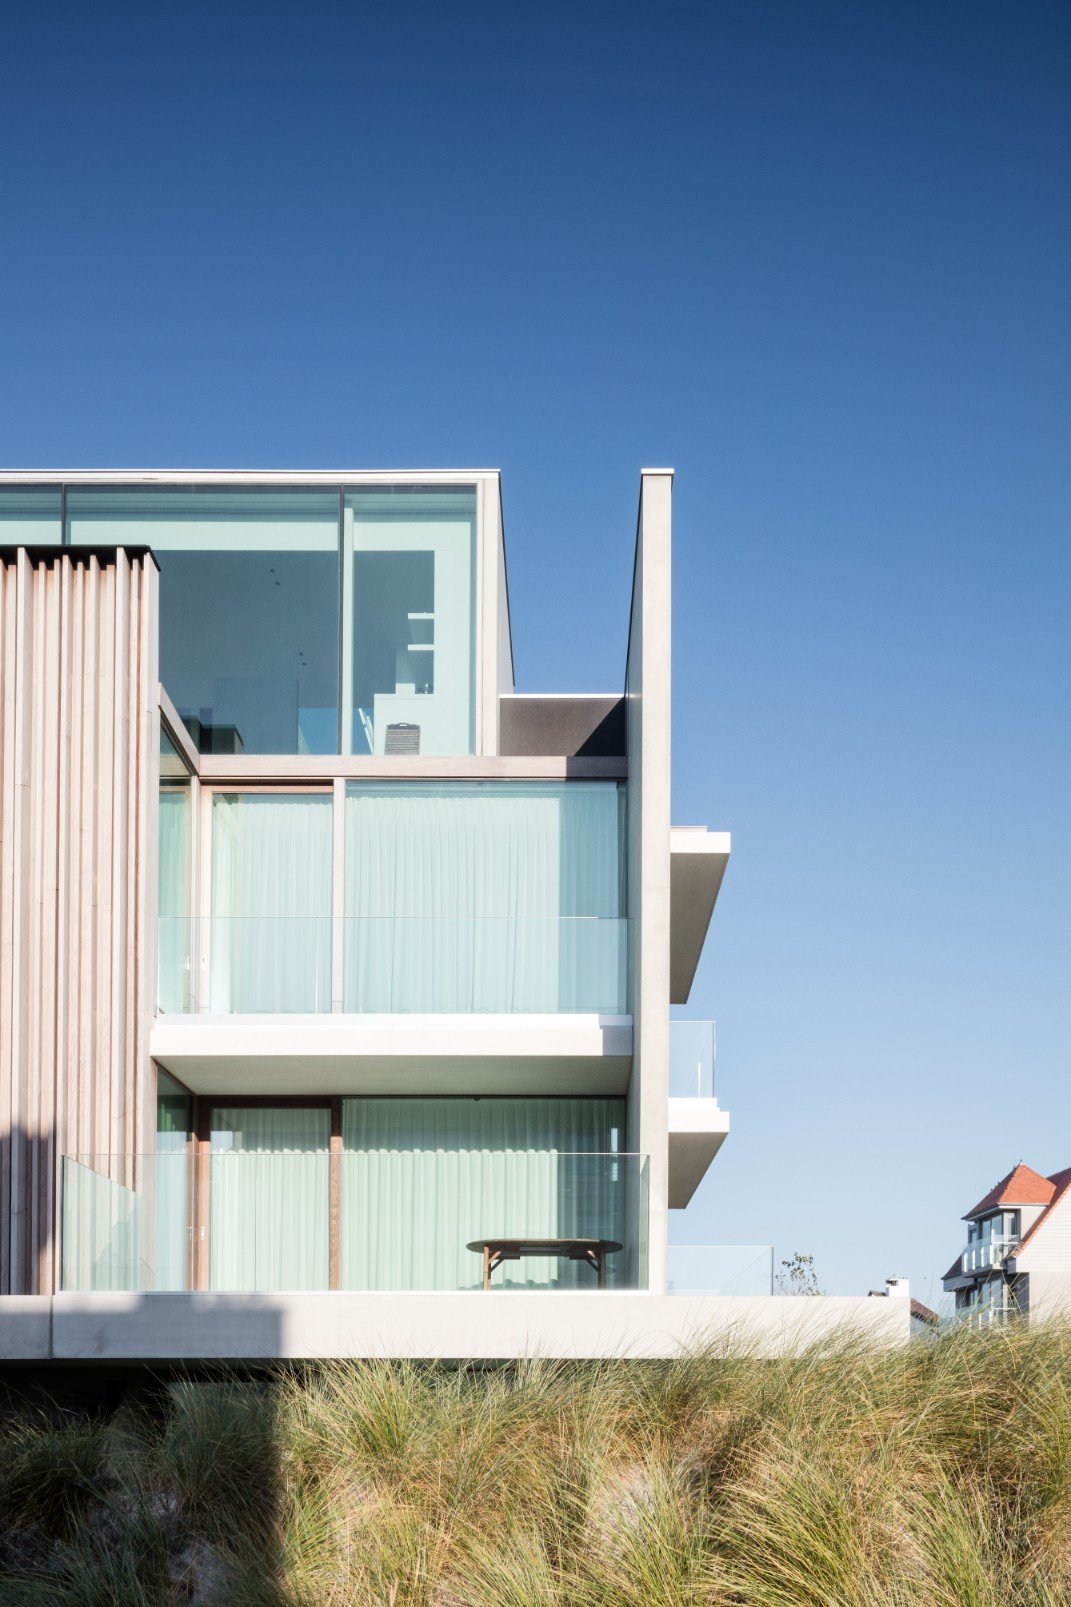 Rietveldprojects-Residence-ON-appartement-design-architectuur-kust-tvdv6